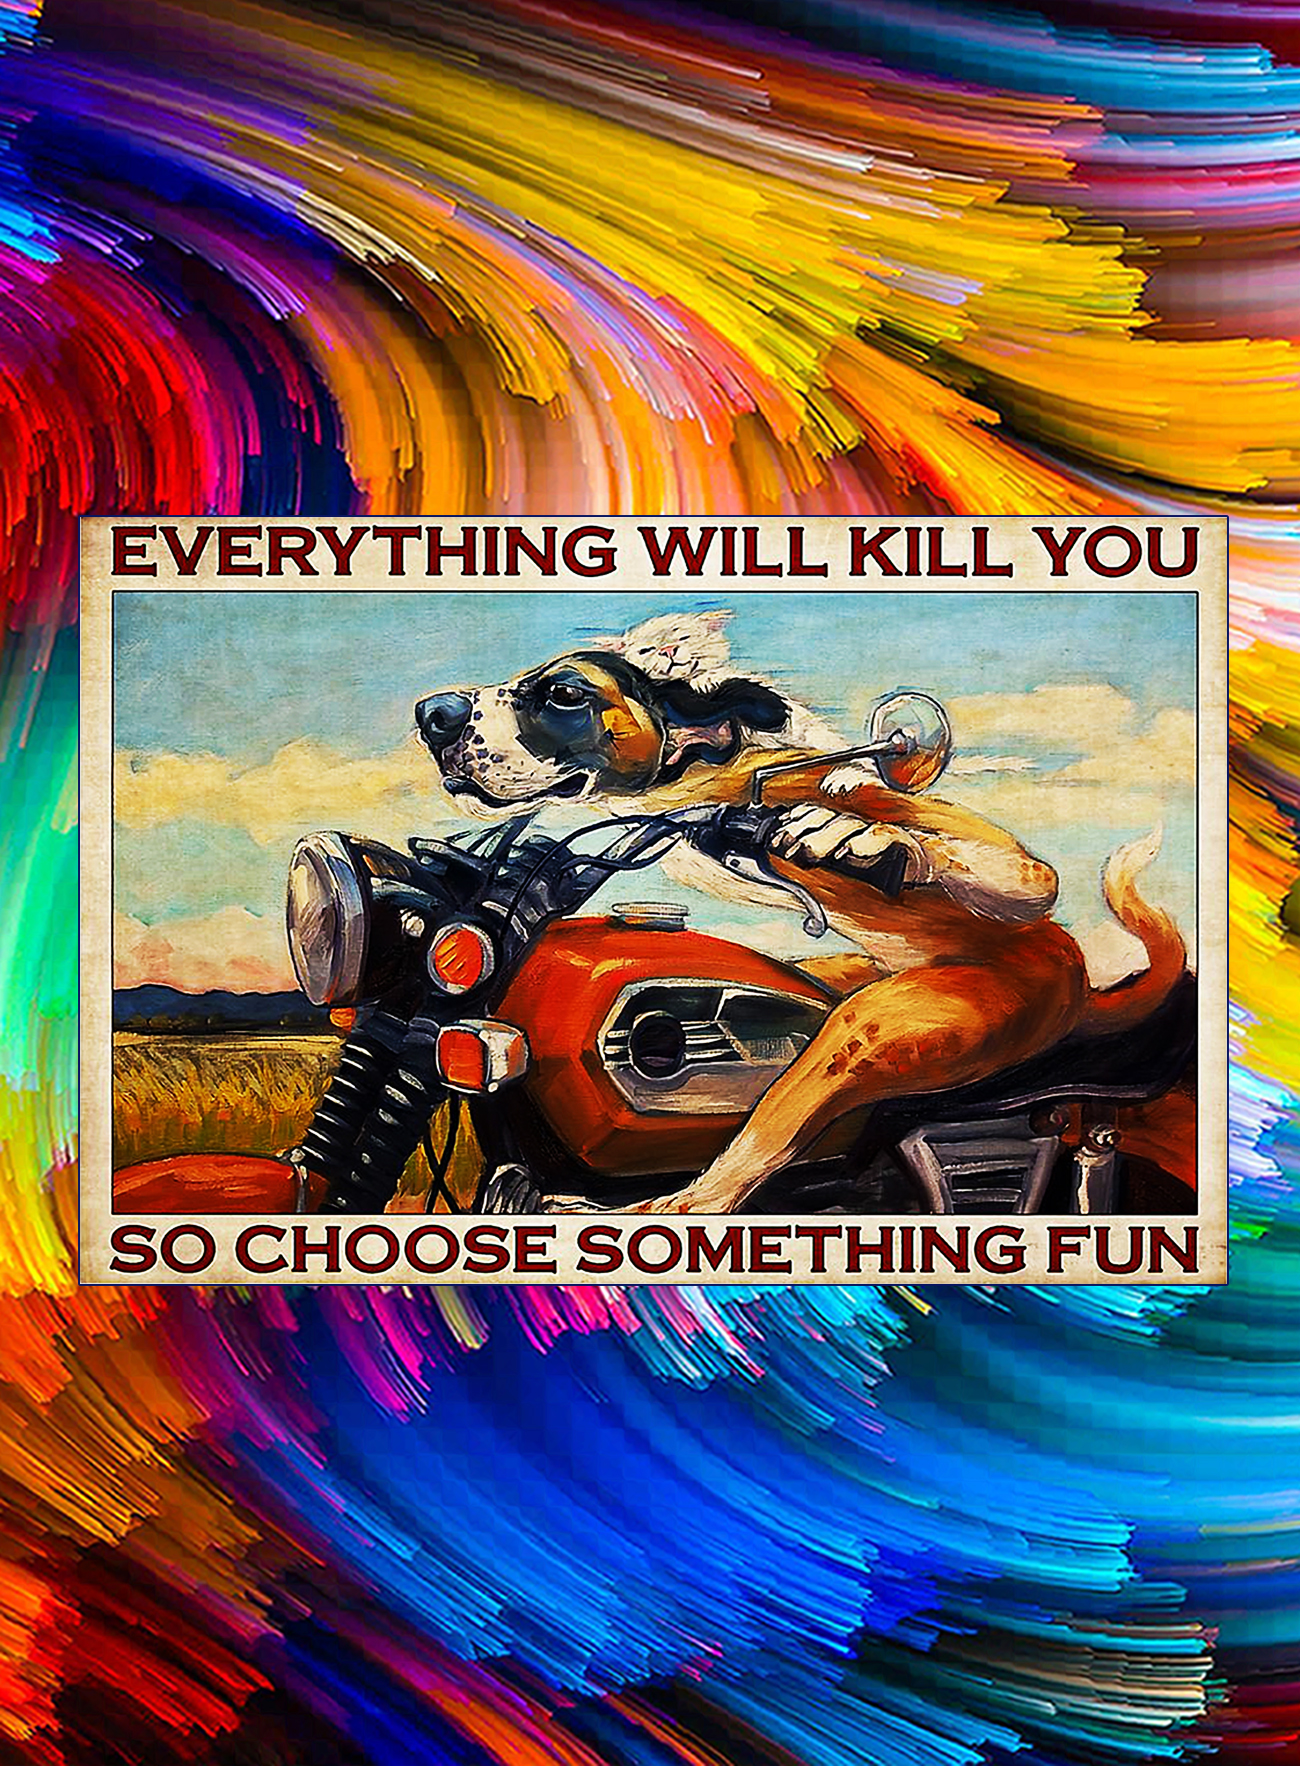 Motorcycle dog and cat everything will kill you so choose something fun poster - A4